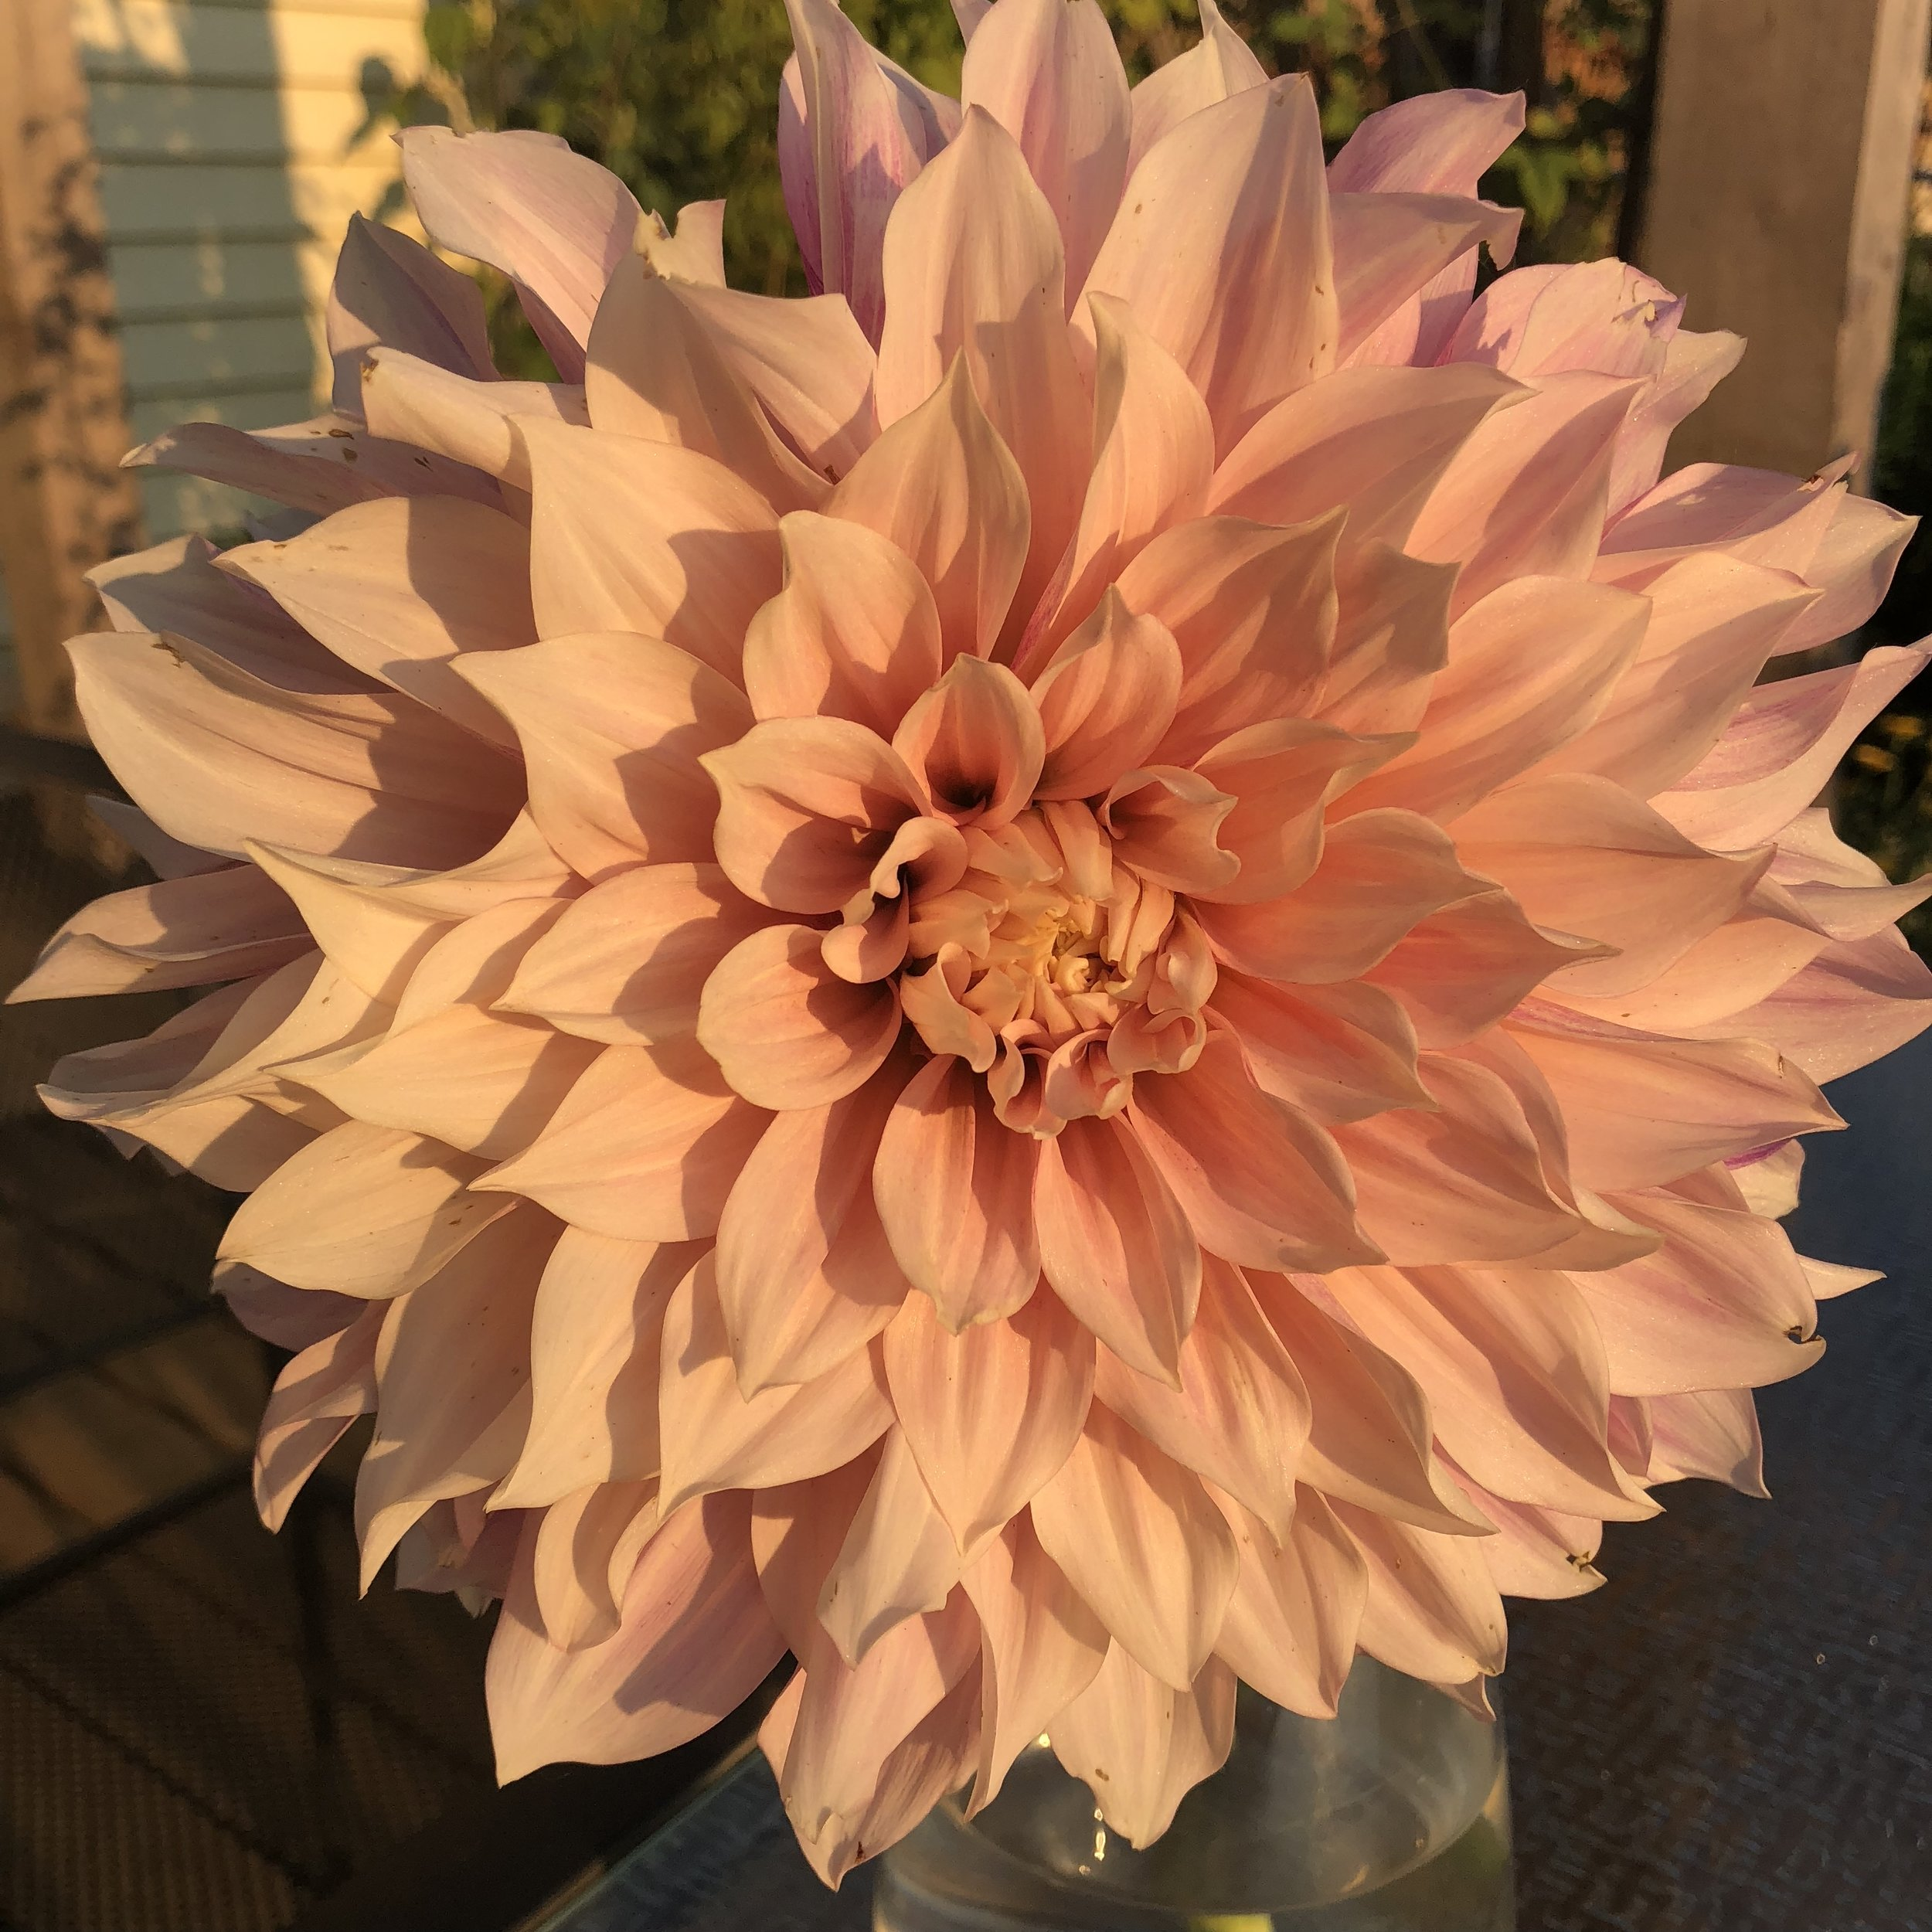 A peach colored dahlia flower.